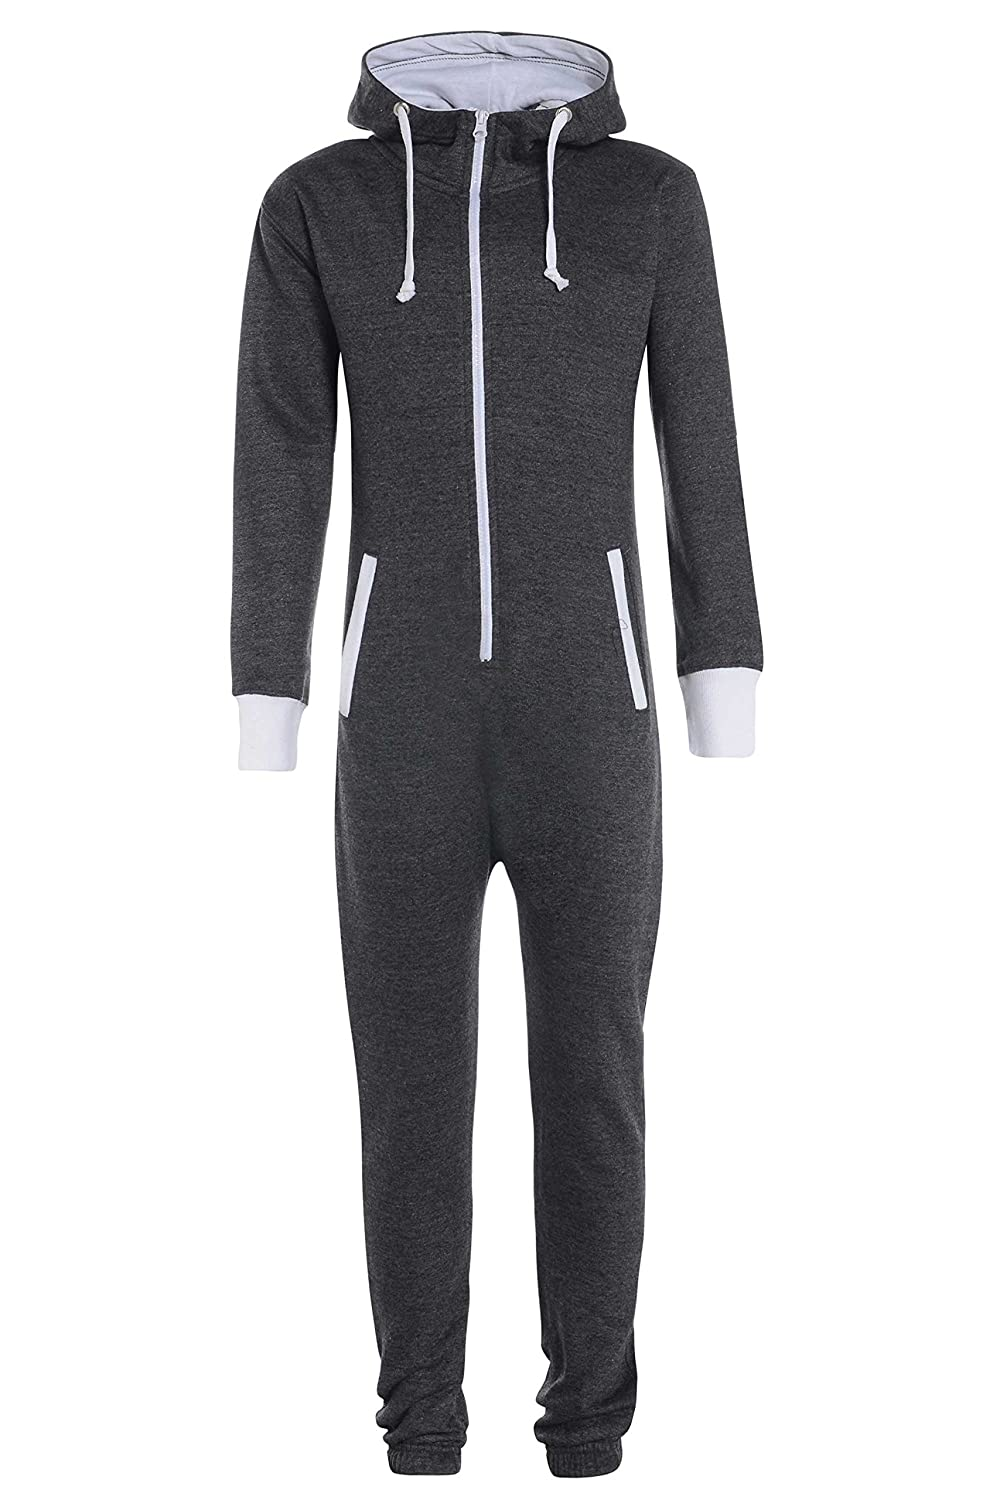 Childrens Unisex Boys Girls Kids Plain Onesie Hooded All In One Jumpsuit Ages 7/8, 9/10, 11/12 & 13 Available in Black, Royal Blue & Silver Grey (13-14, Charcoal Grey)